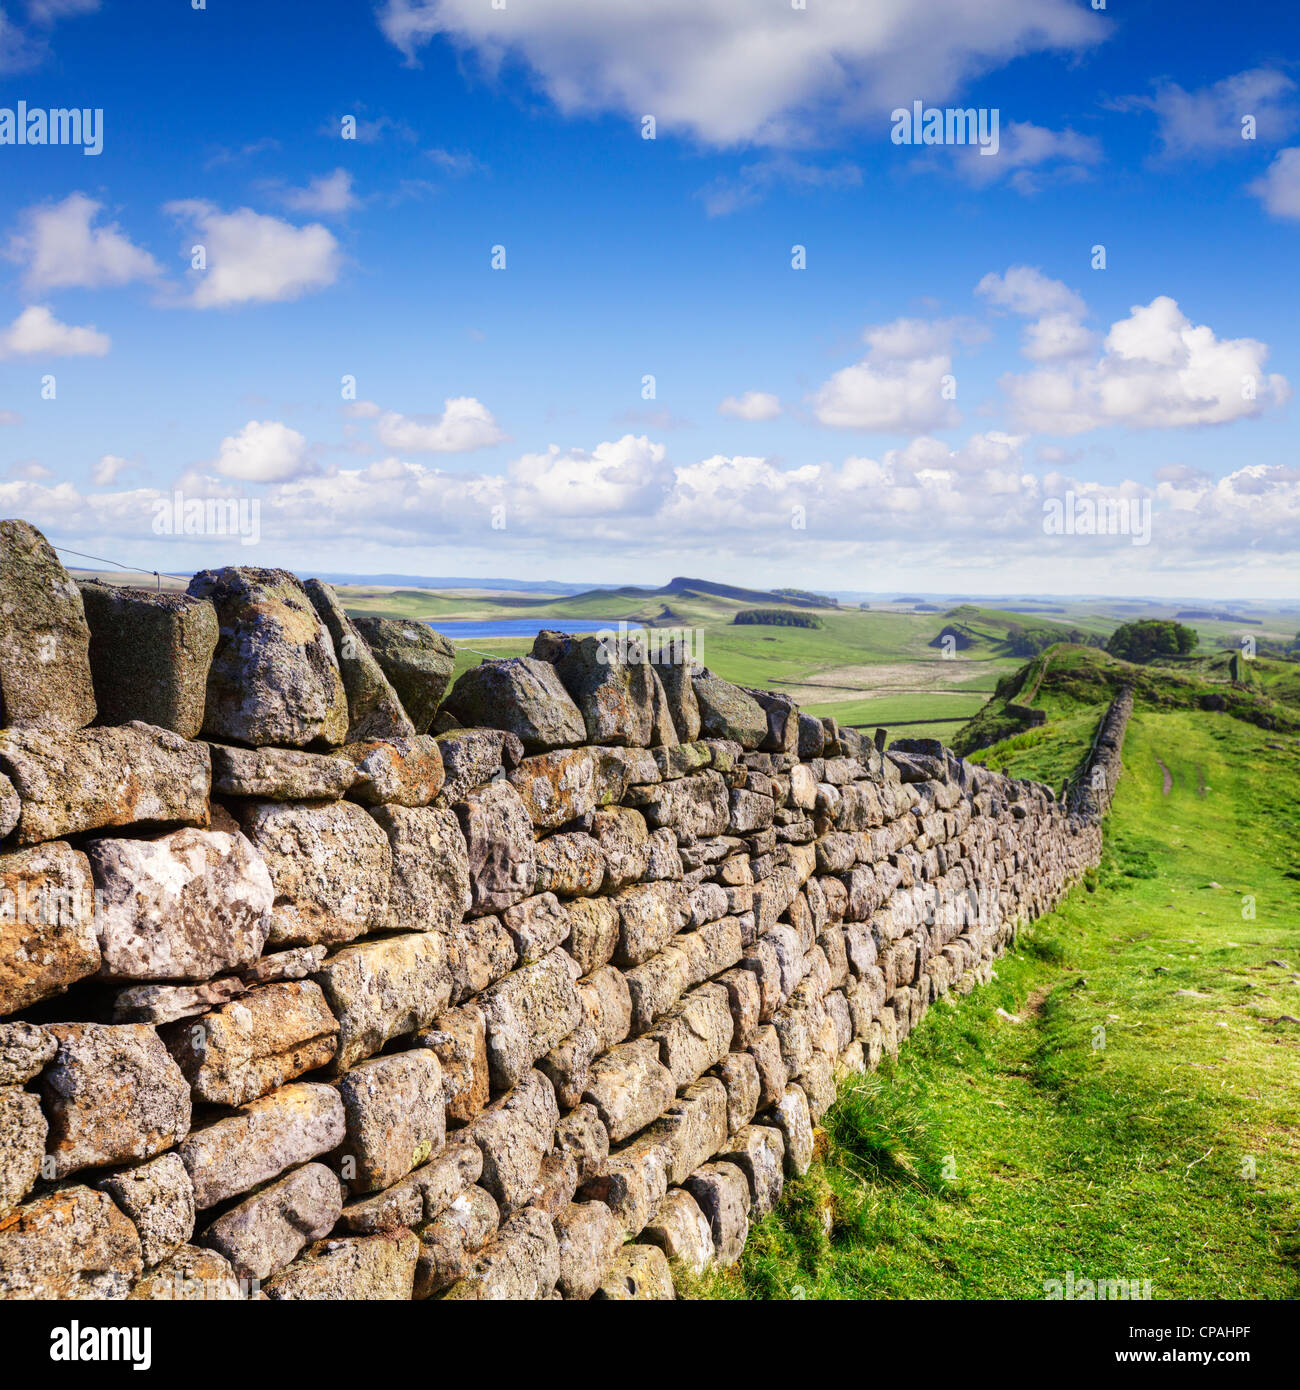 Dry stone wall running the same course as Hadrian's Wall in Northumberland. - Stock Image